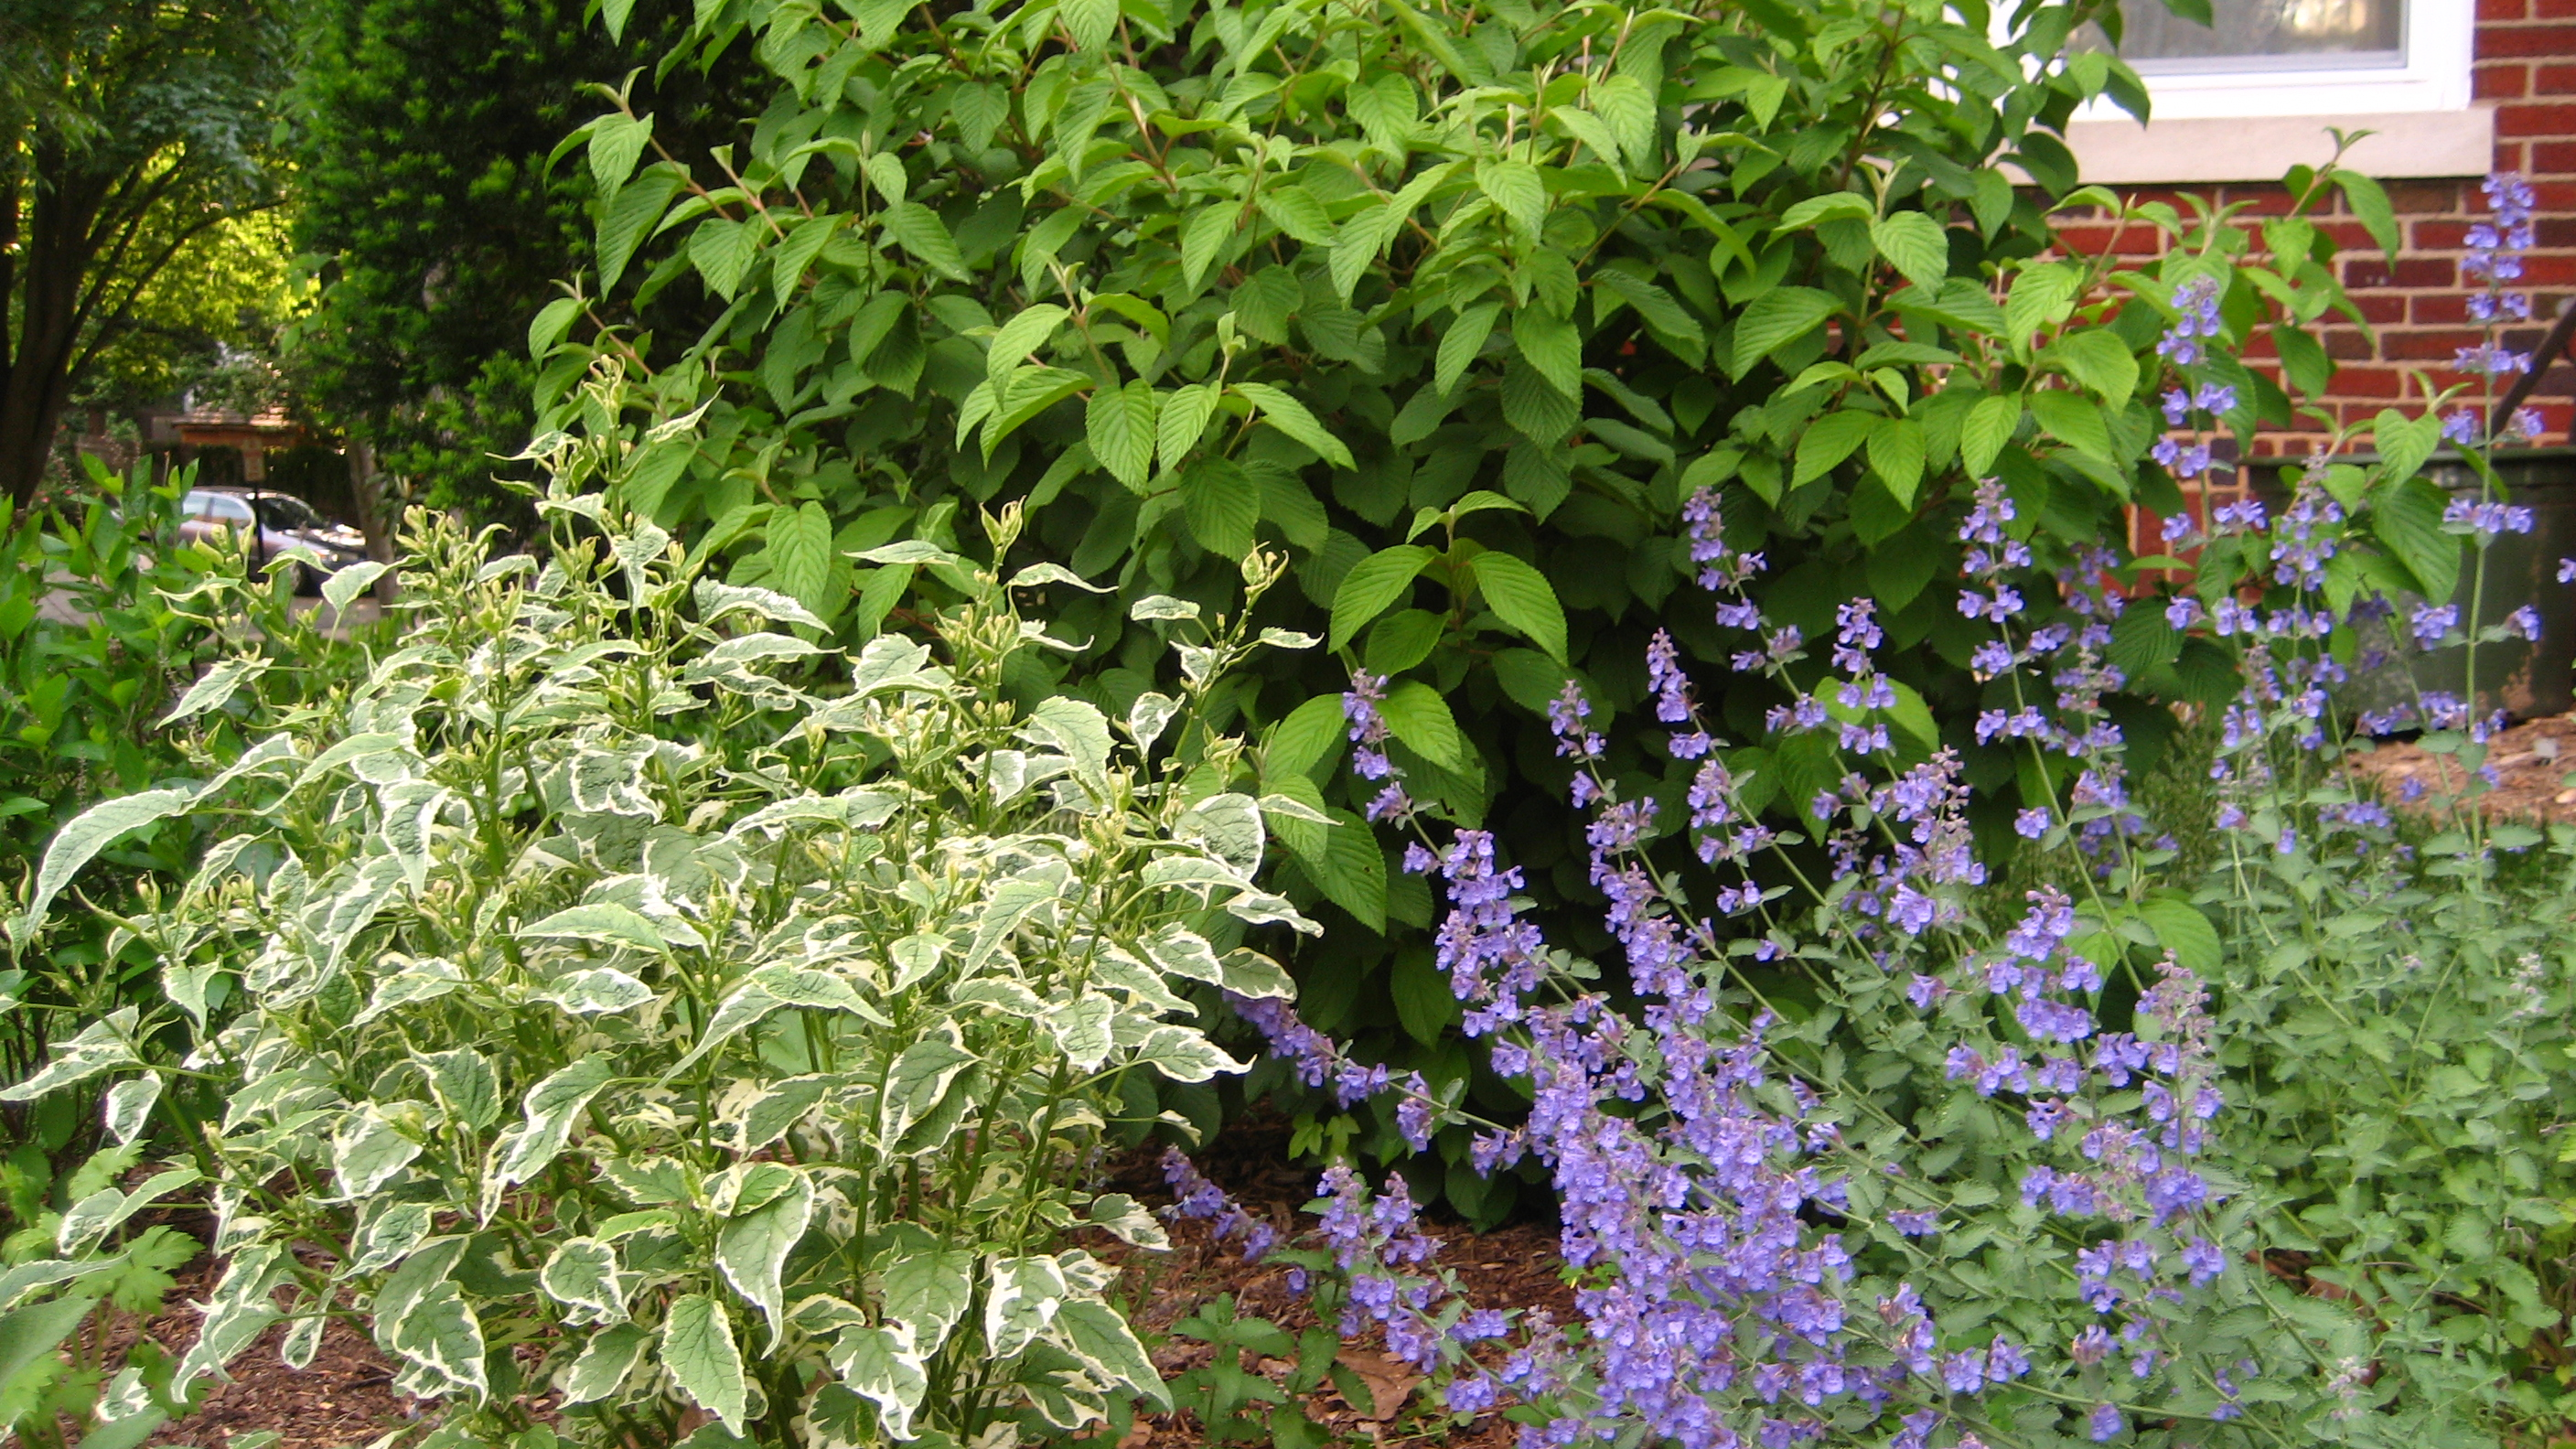 Gardening and gentle redesign llc in chevy chase md 20815 for Garden redesign